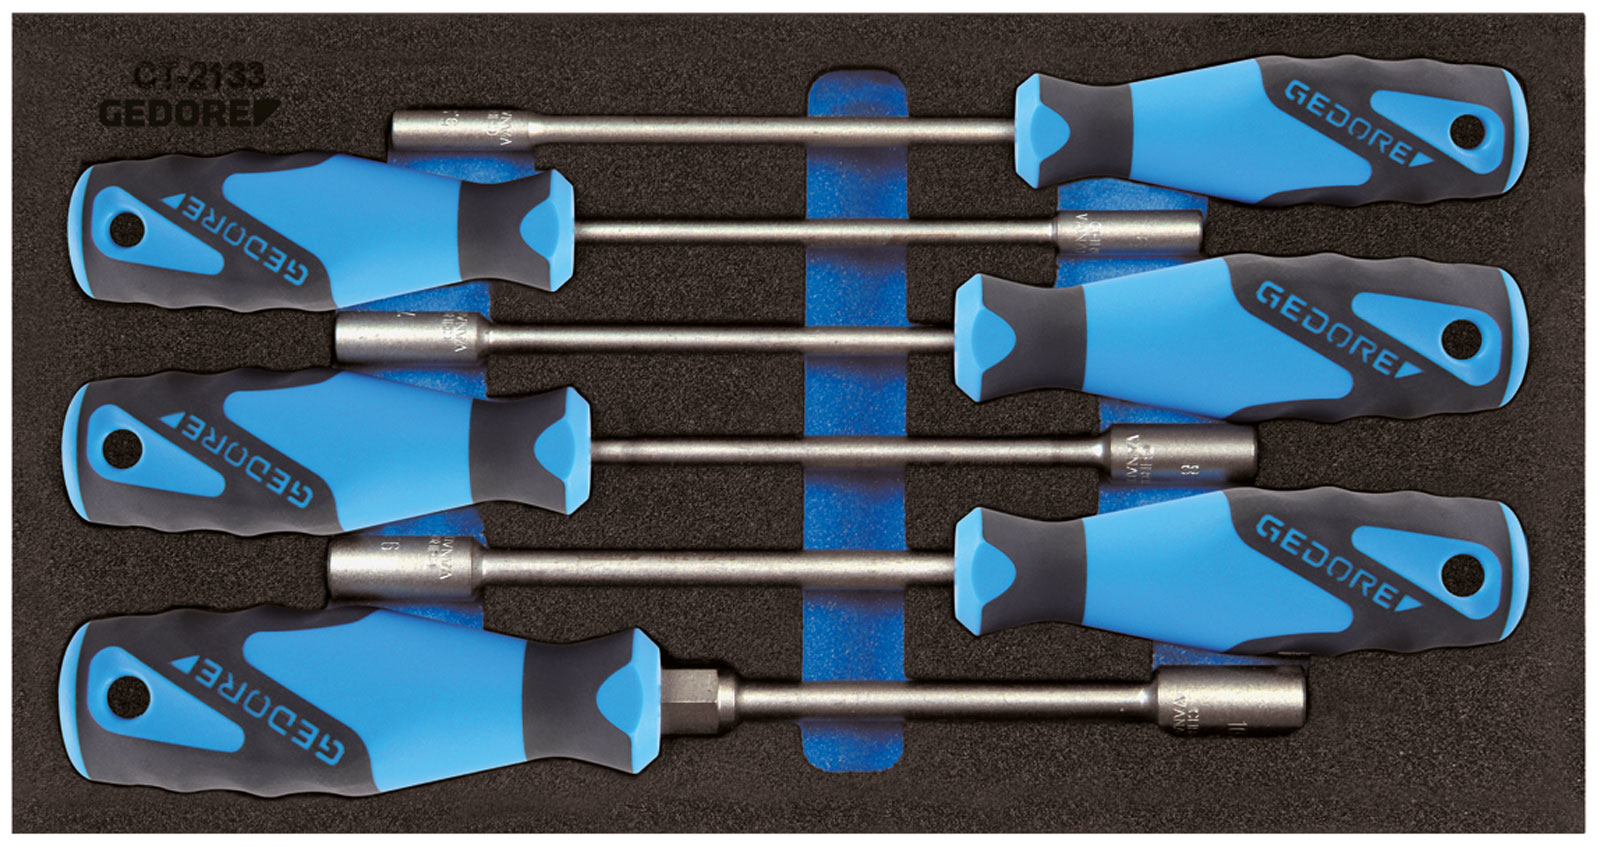 Gedore 1500 CT1-2133 Socket wrench Set